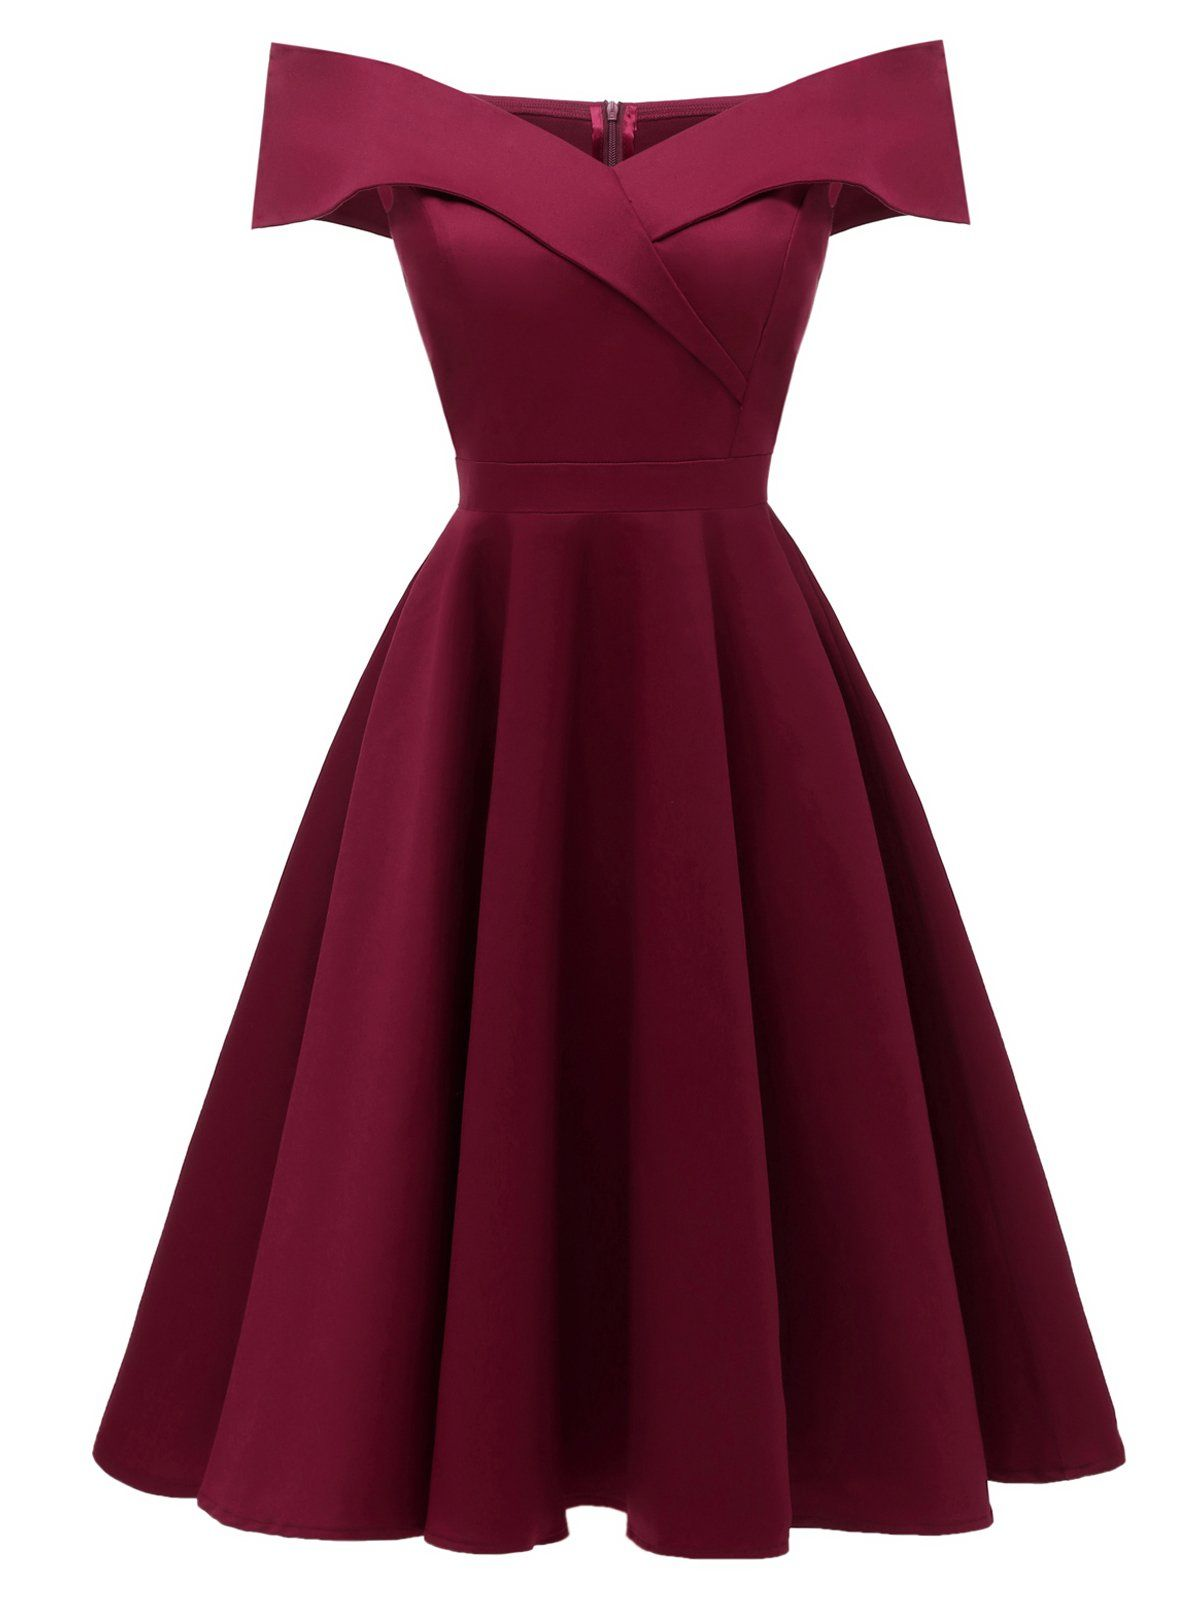 1950s Off Shoulder Swing Dress #cocktailpartydresses